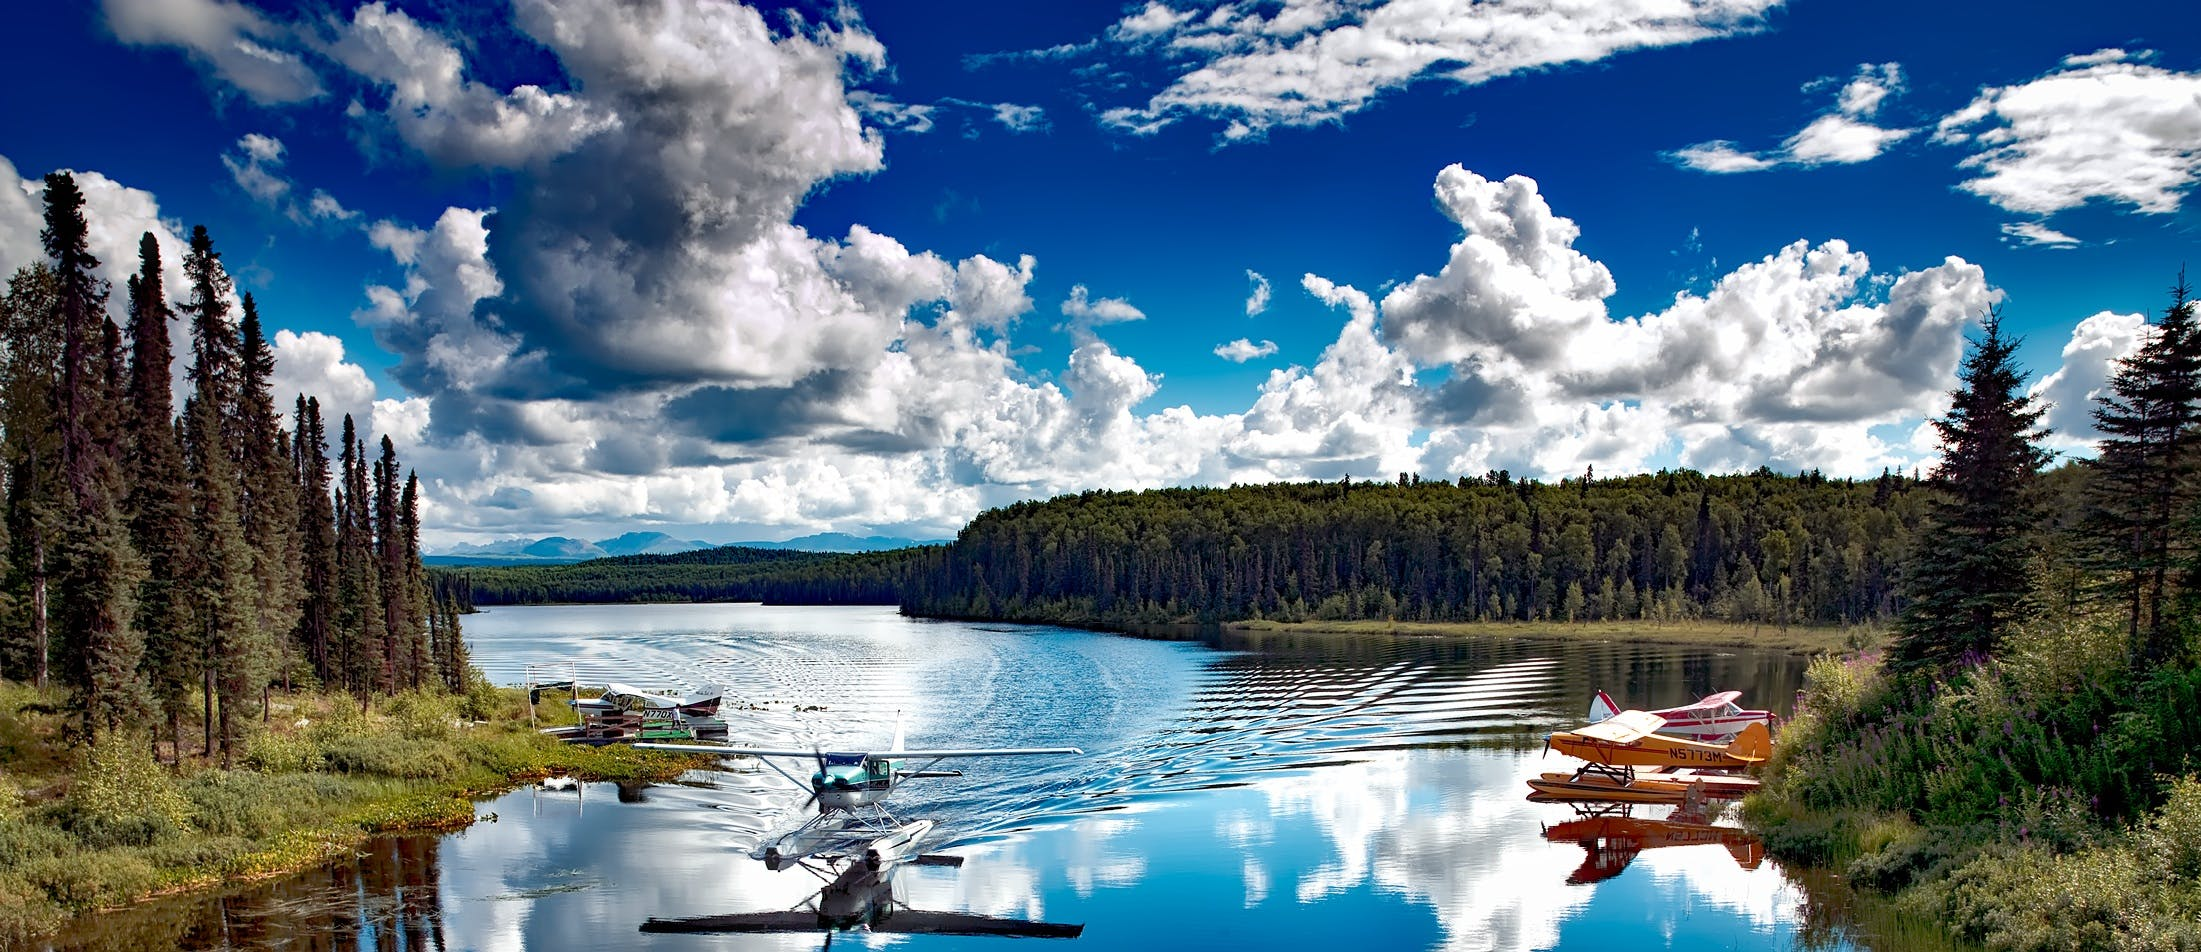 Biplane on Water Between Forest Under Blue and White Sky